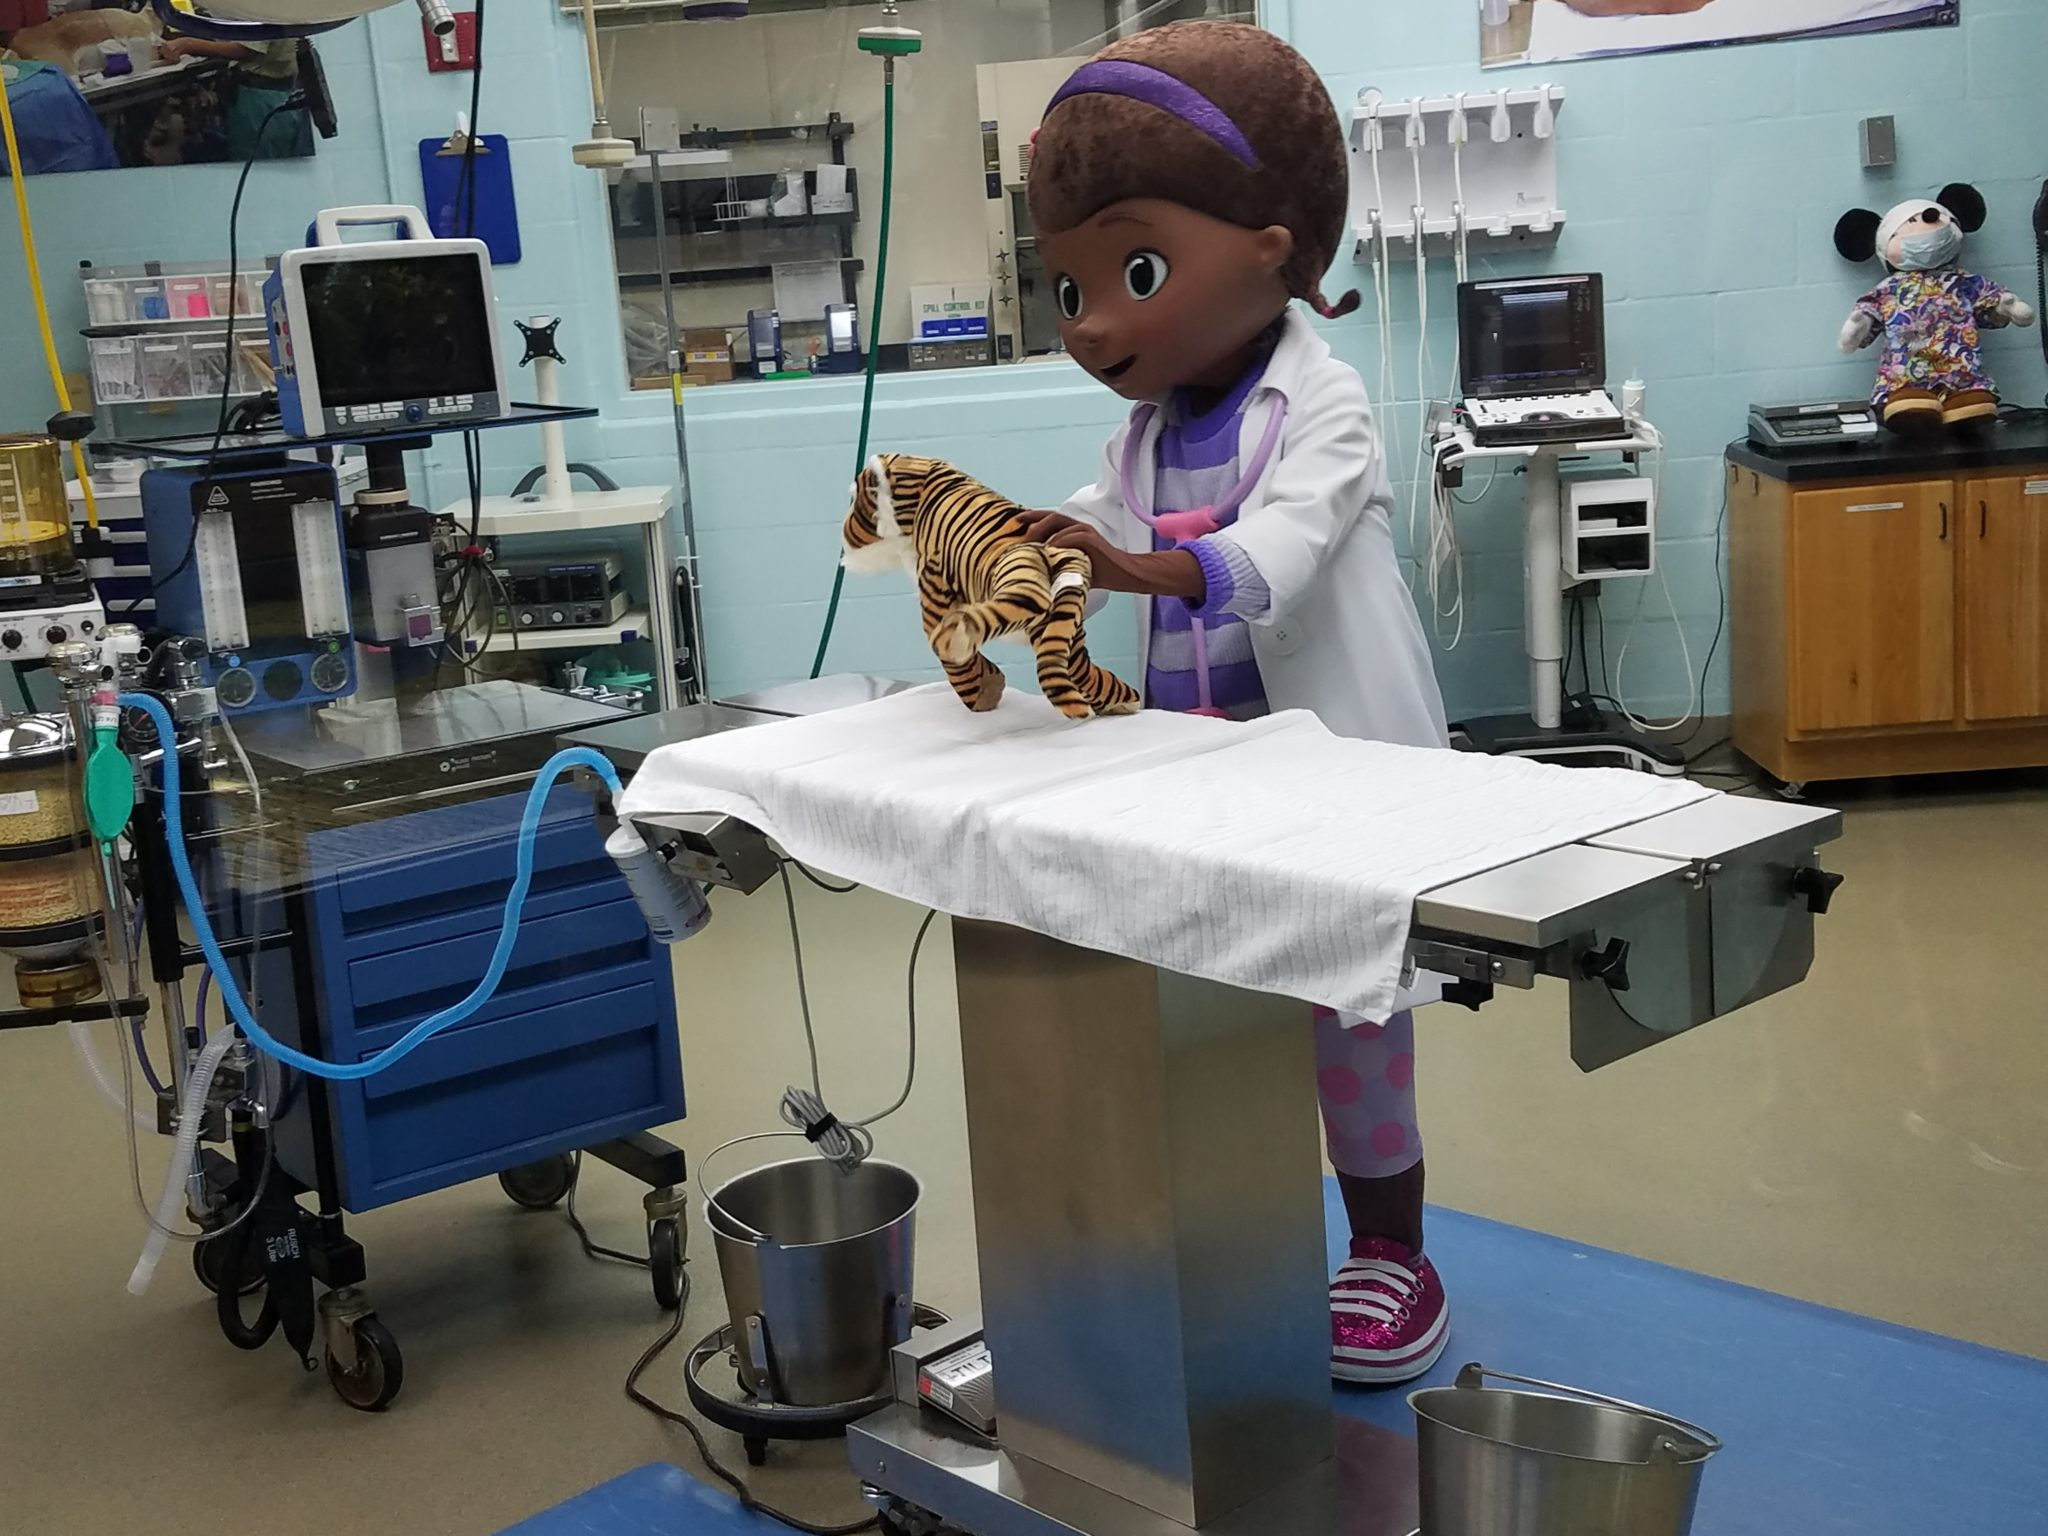 New Doc McStuffins Character Meet in Animal Kingdom's Conservation